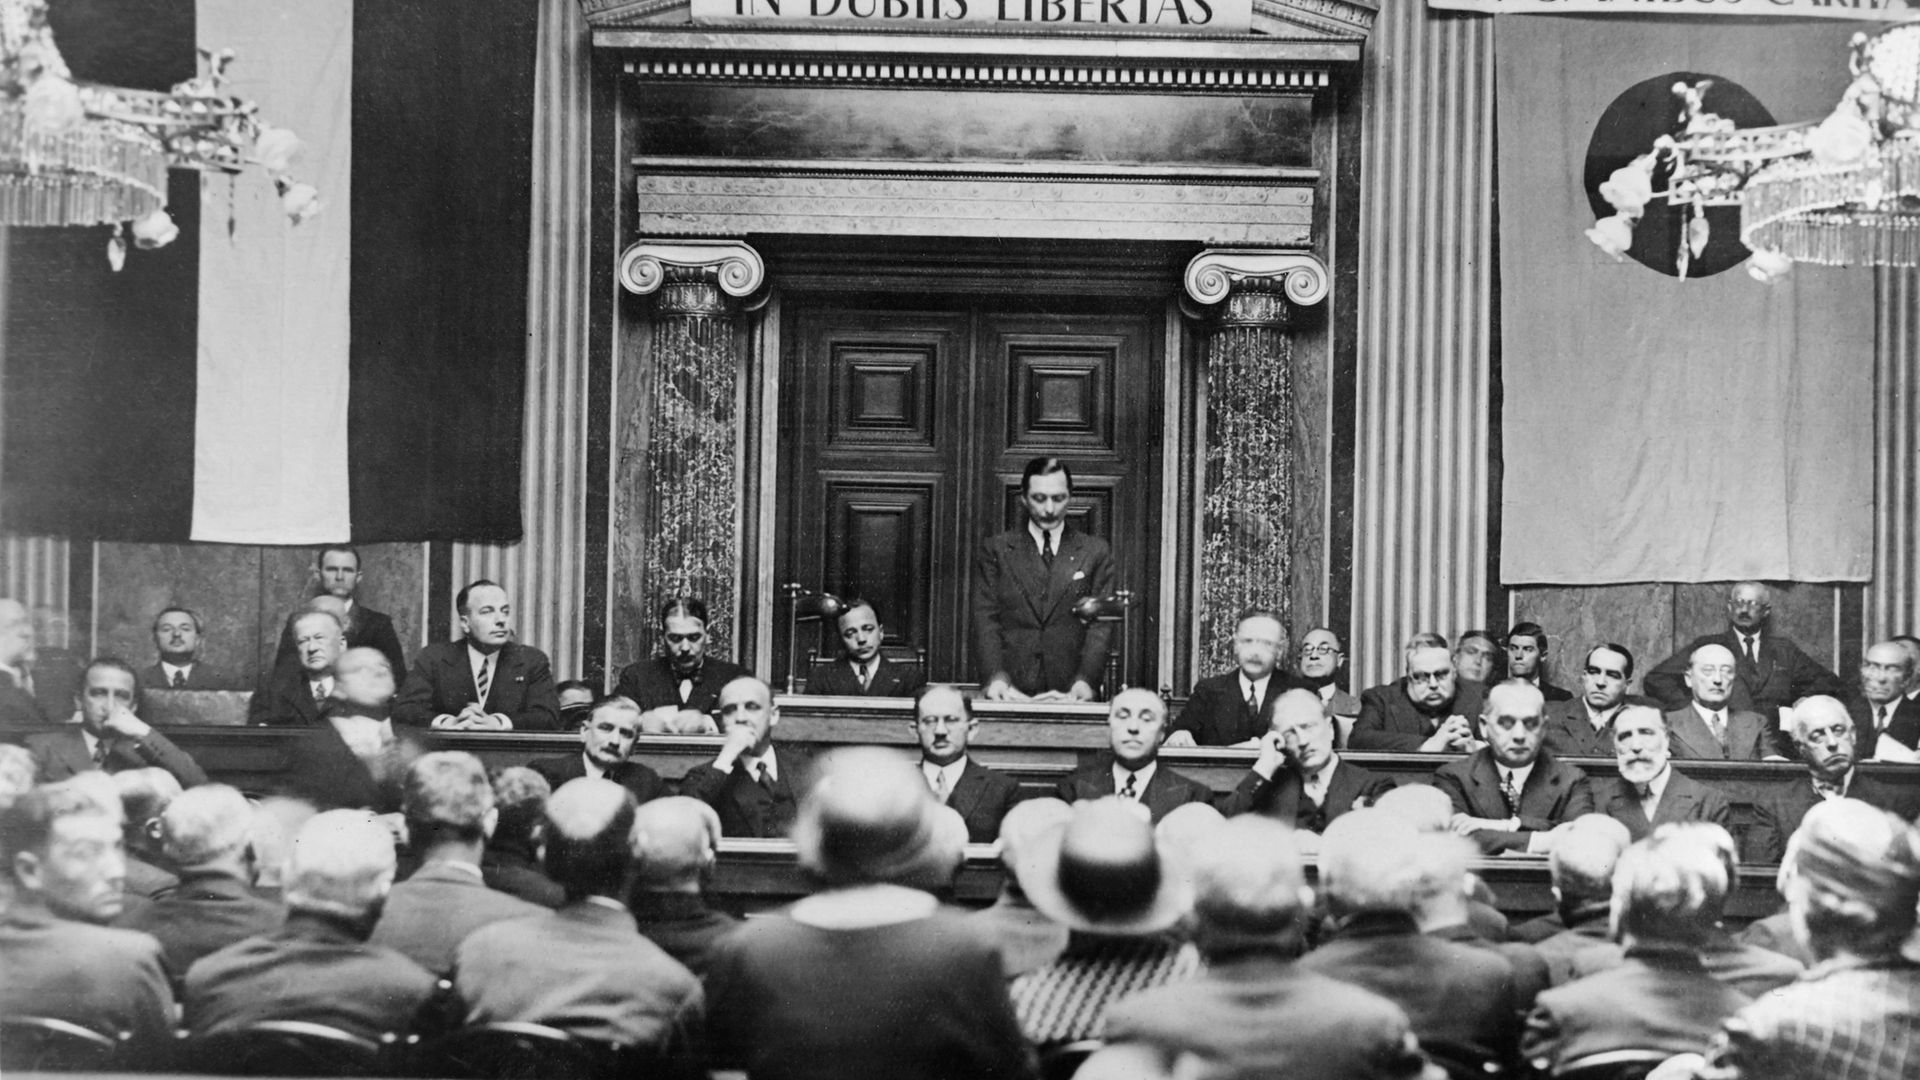 Richard Coudenhove-Kalergi, founder and president of the Pan American Union, opens the inaugural session of the Pan-American Congress in Vienna in May 1934 - Credit: Gamma-Keystone via Getty Images